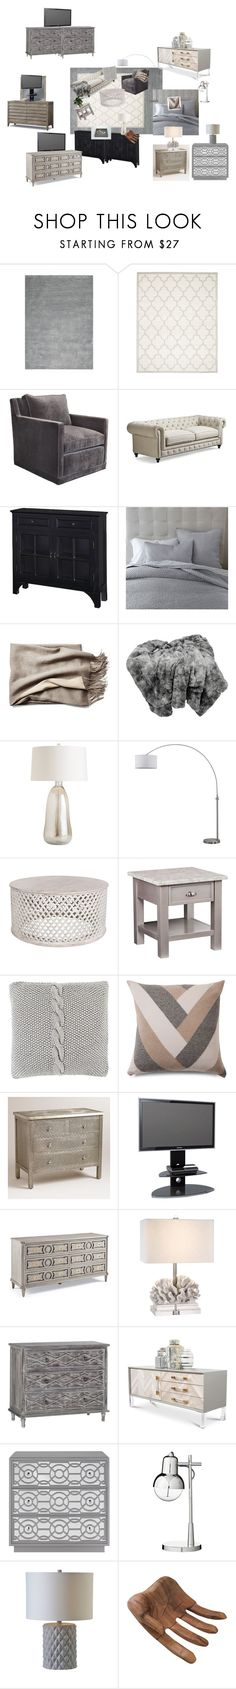 """""""Living space 2"""" by taya-4 on Polyvore featuring interior, interiors, interior design, home, home decor, interior decorating, Home Decorators Collection, Safavieh, Frontgate and Powell Furniture"""